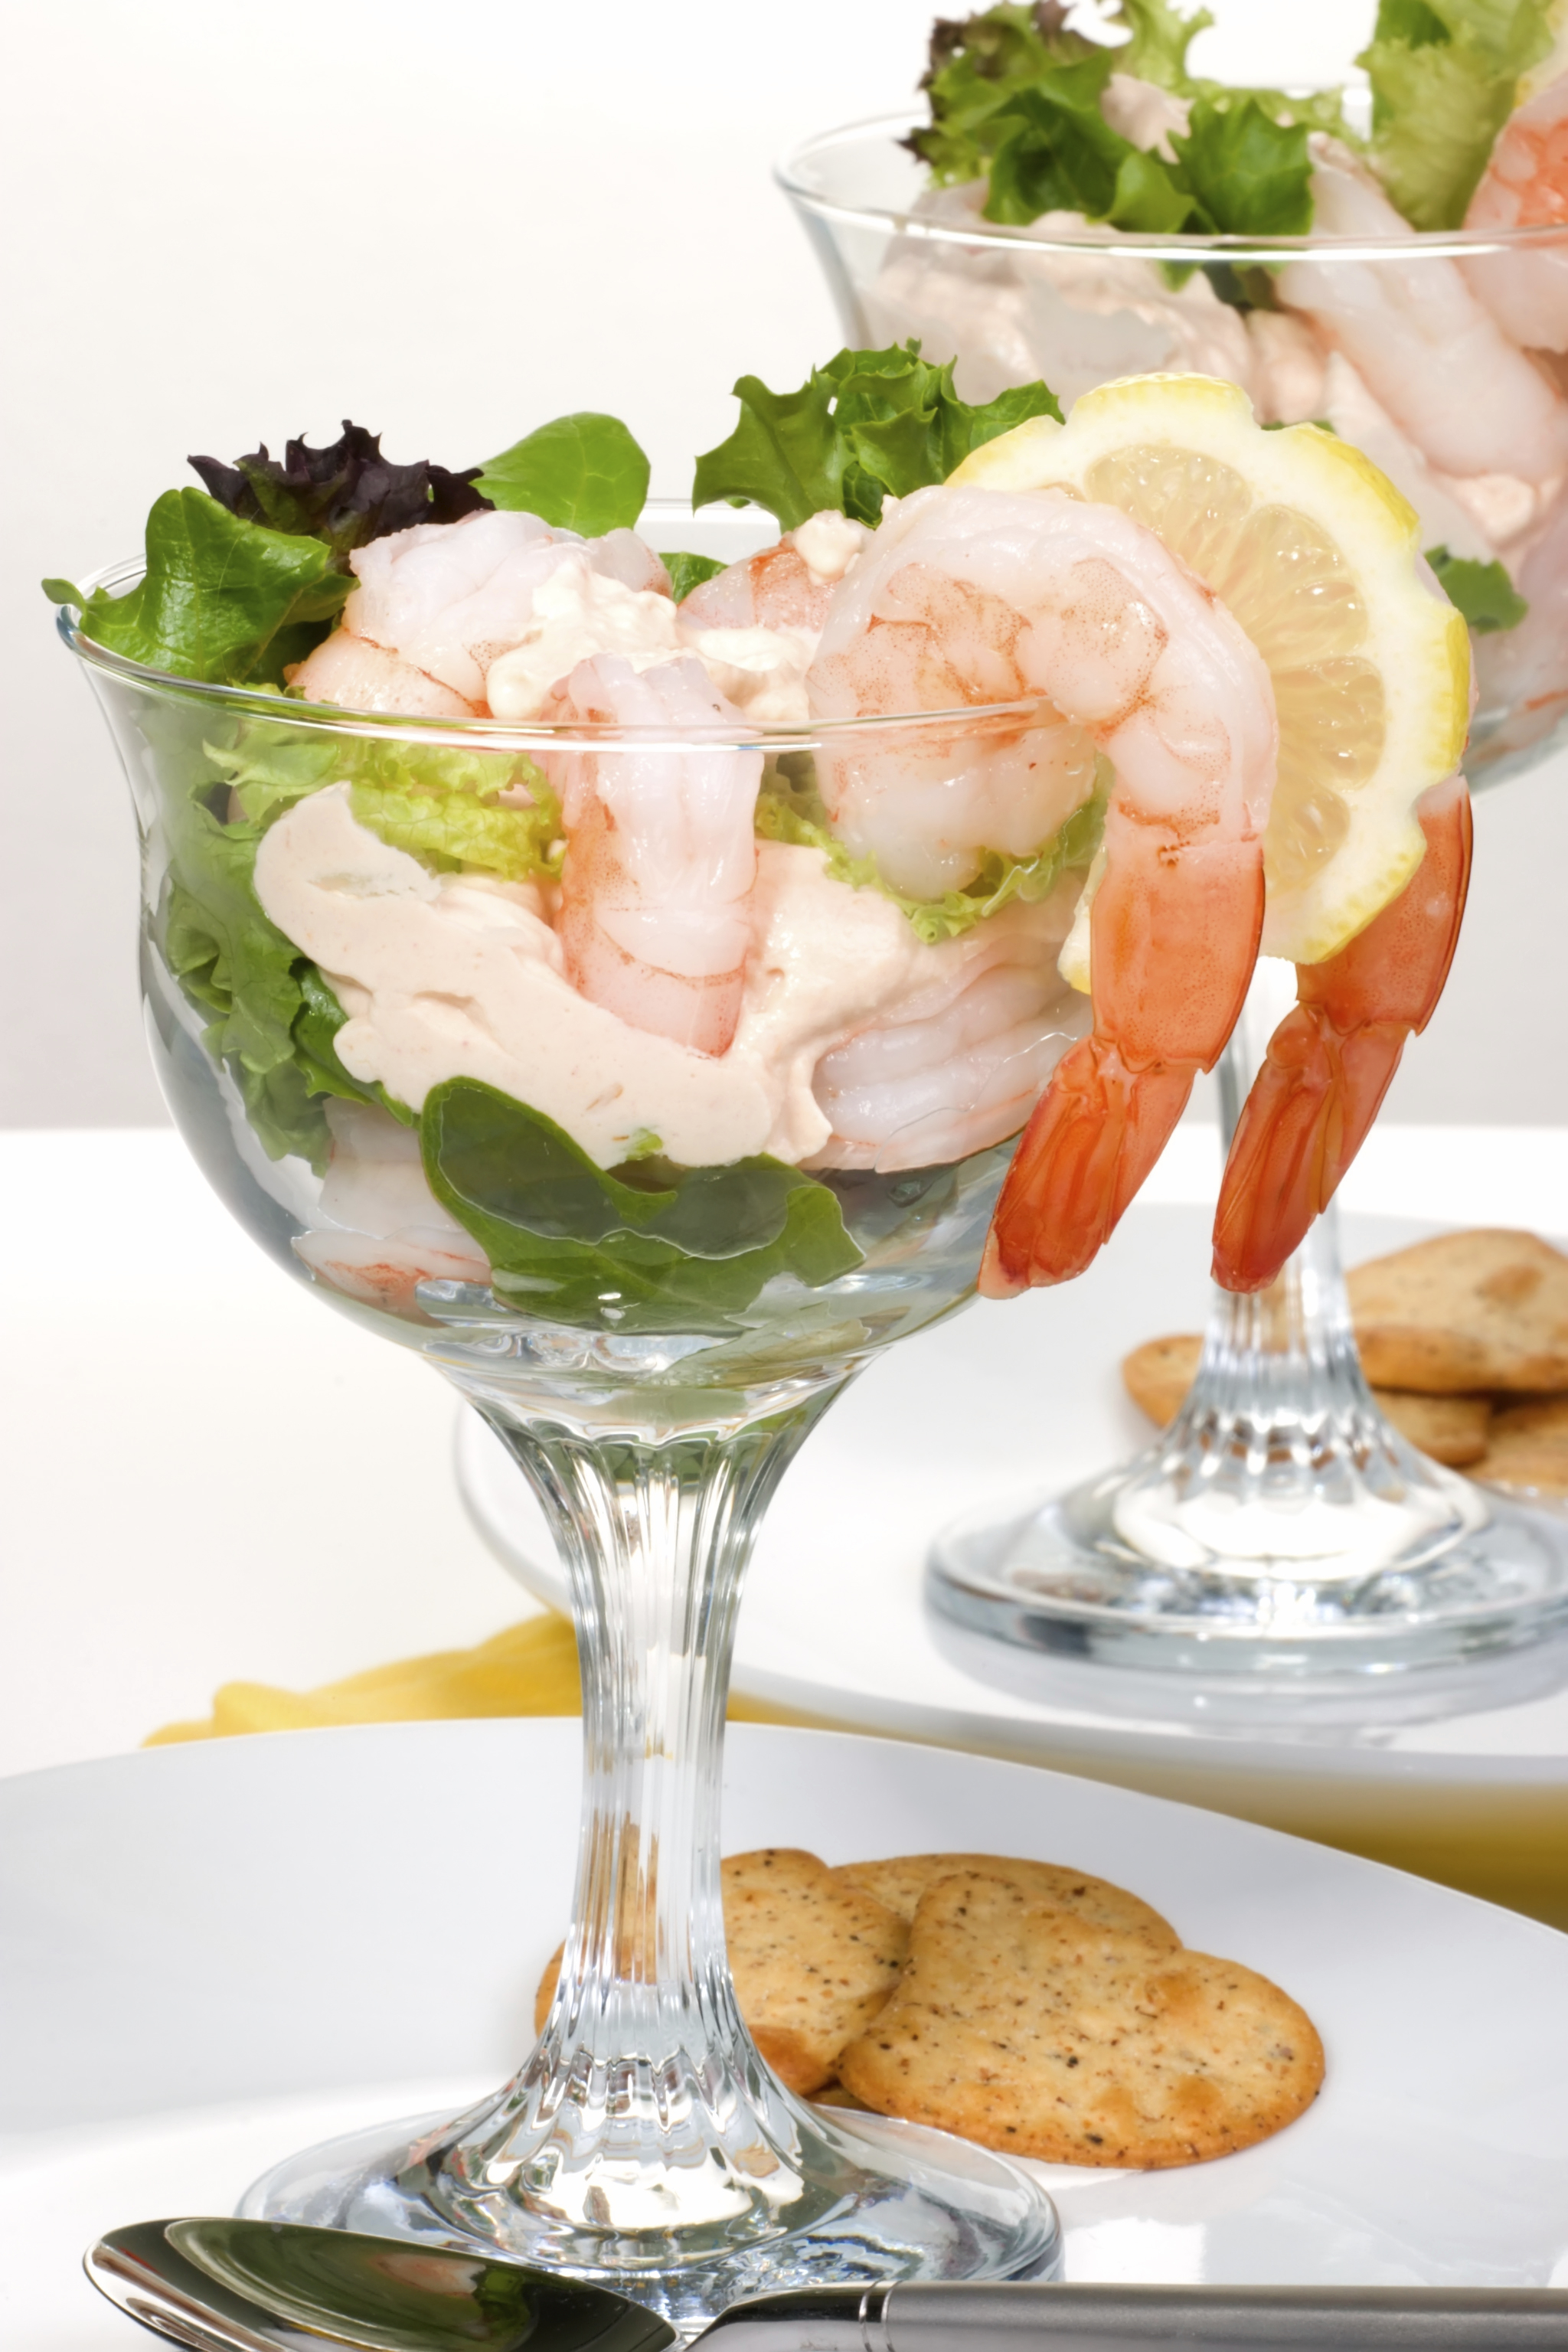 Colossal Shrimp with Tequila Lime Dipping Sauce Image